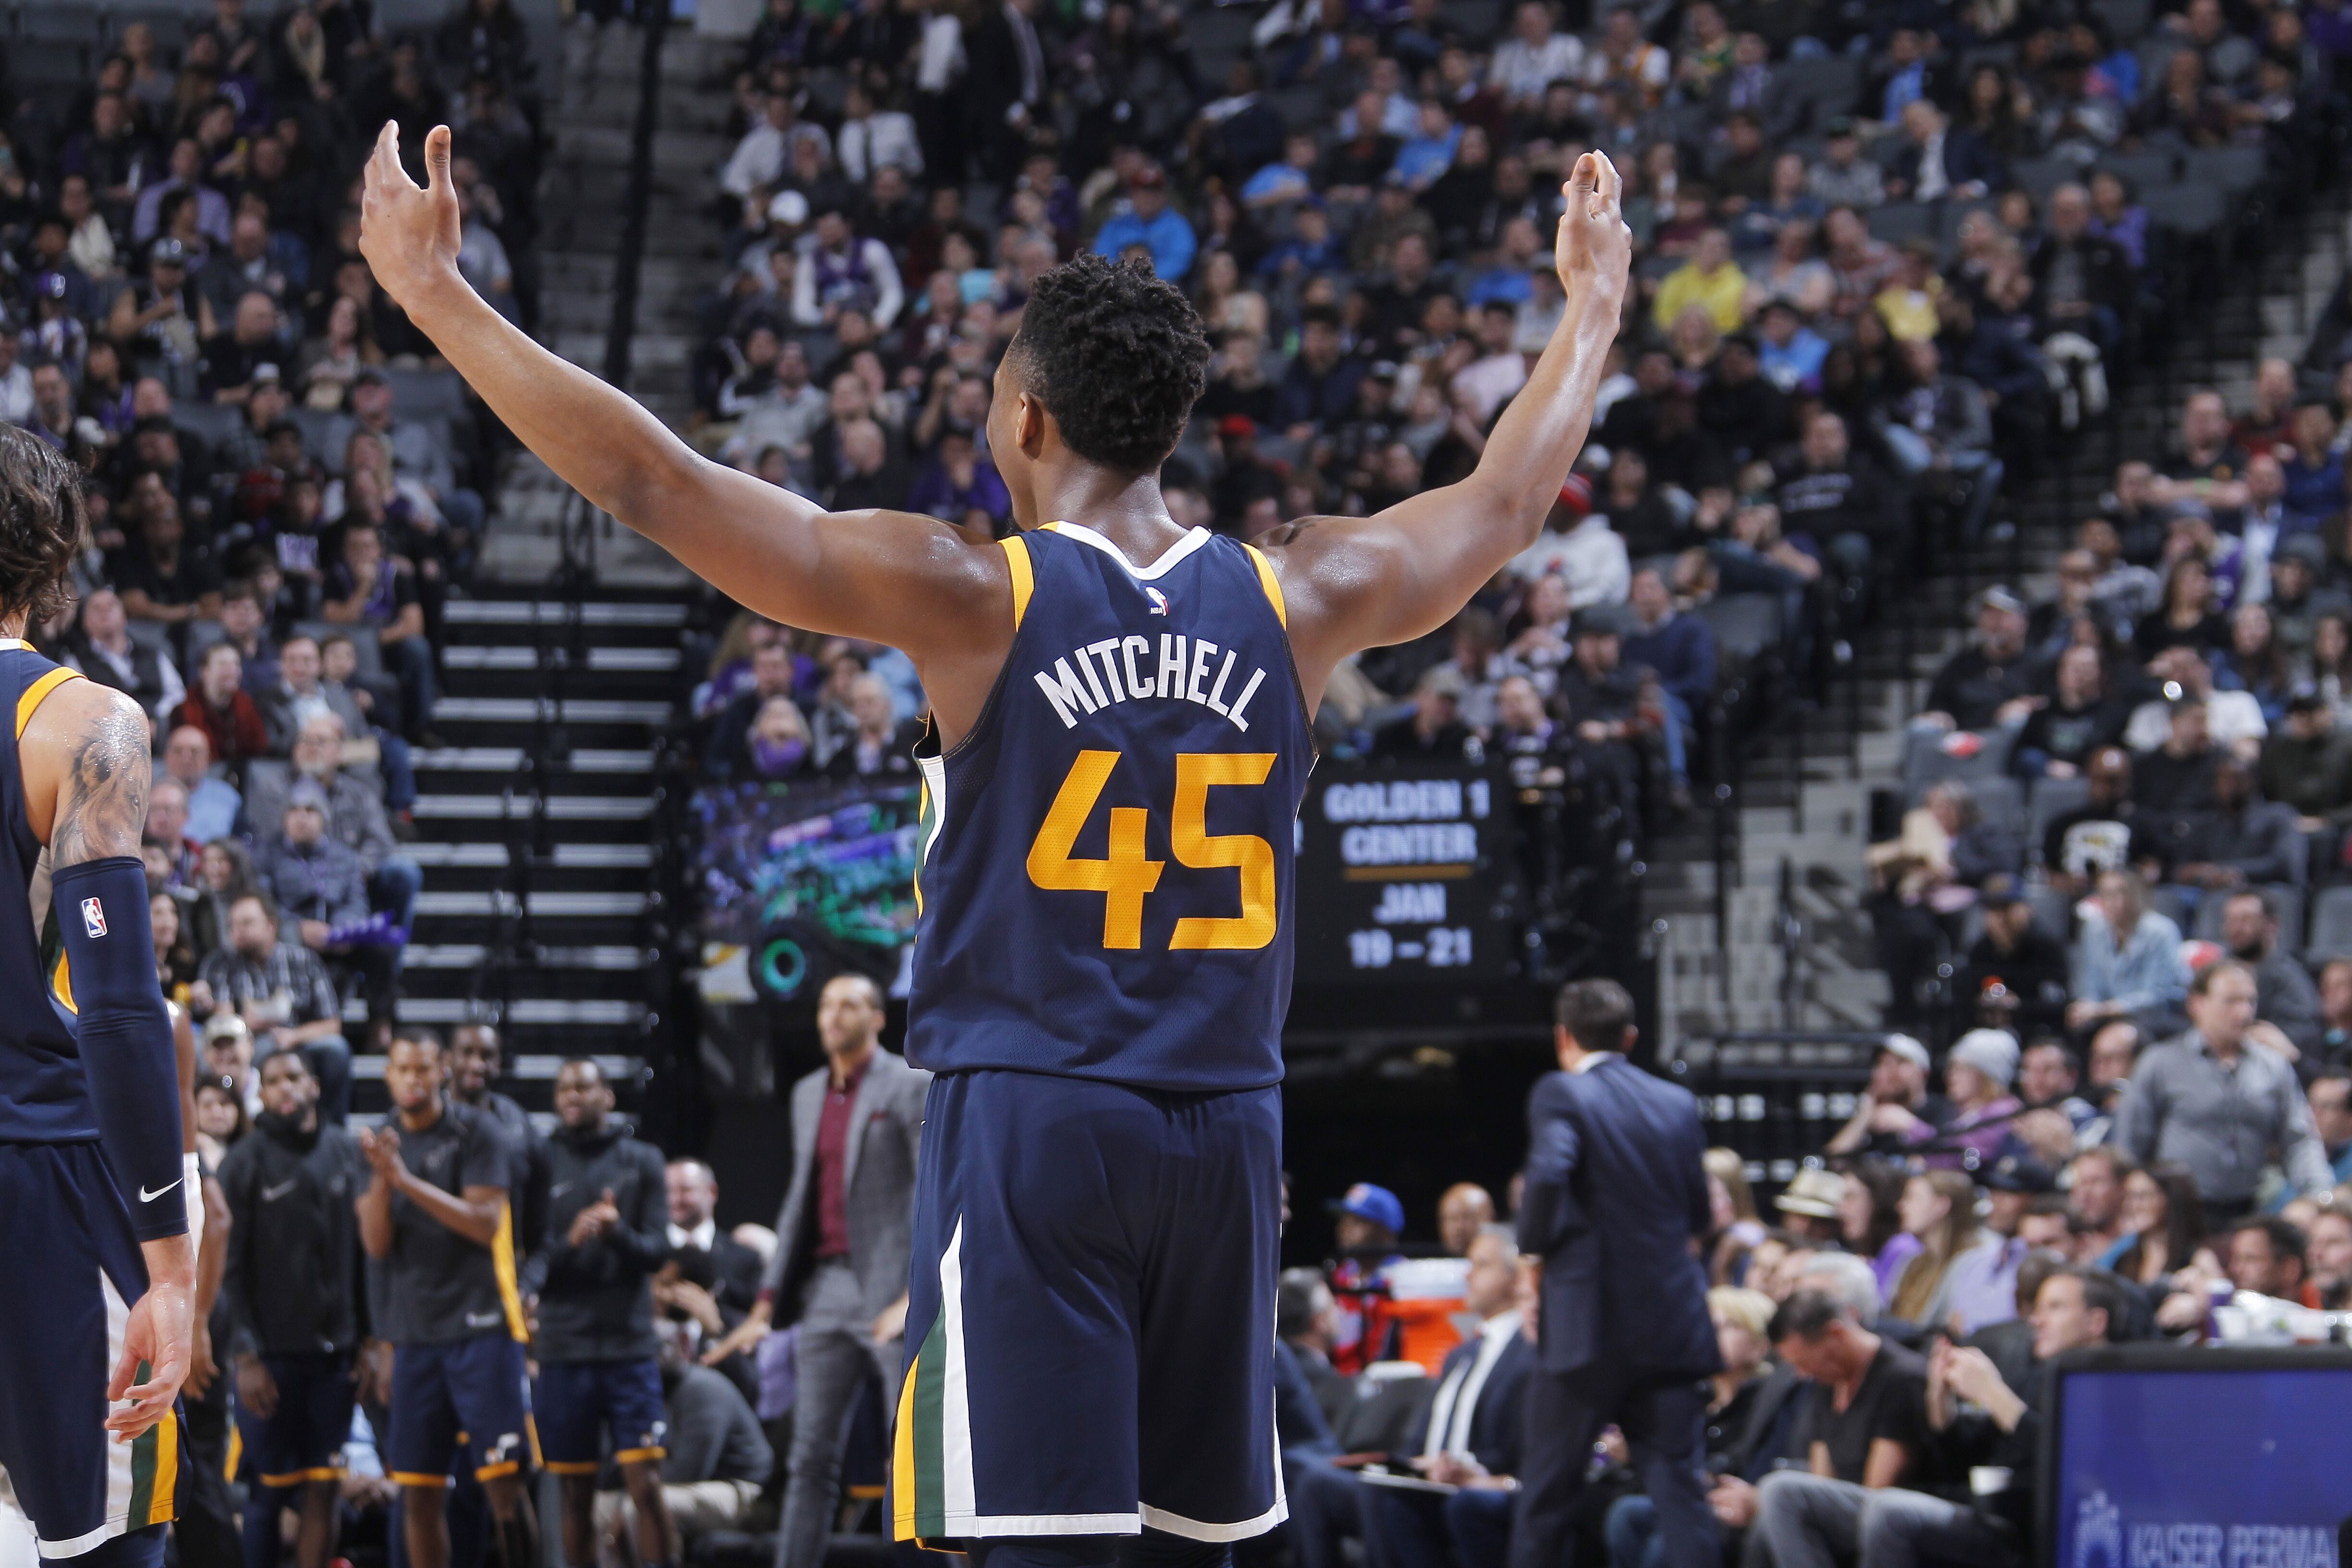 d626763a61c Could Utah Jazz end Rubio experiment to start Donovan Mitchell at PG